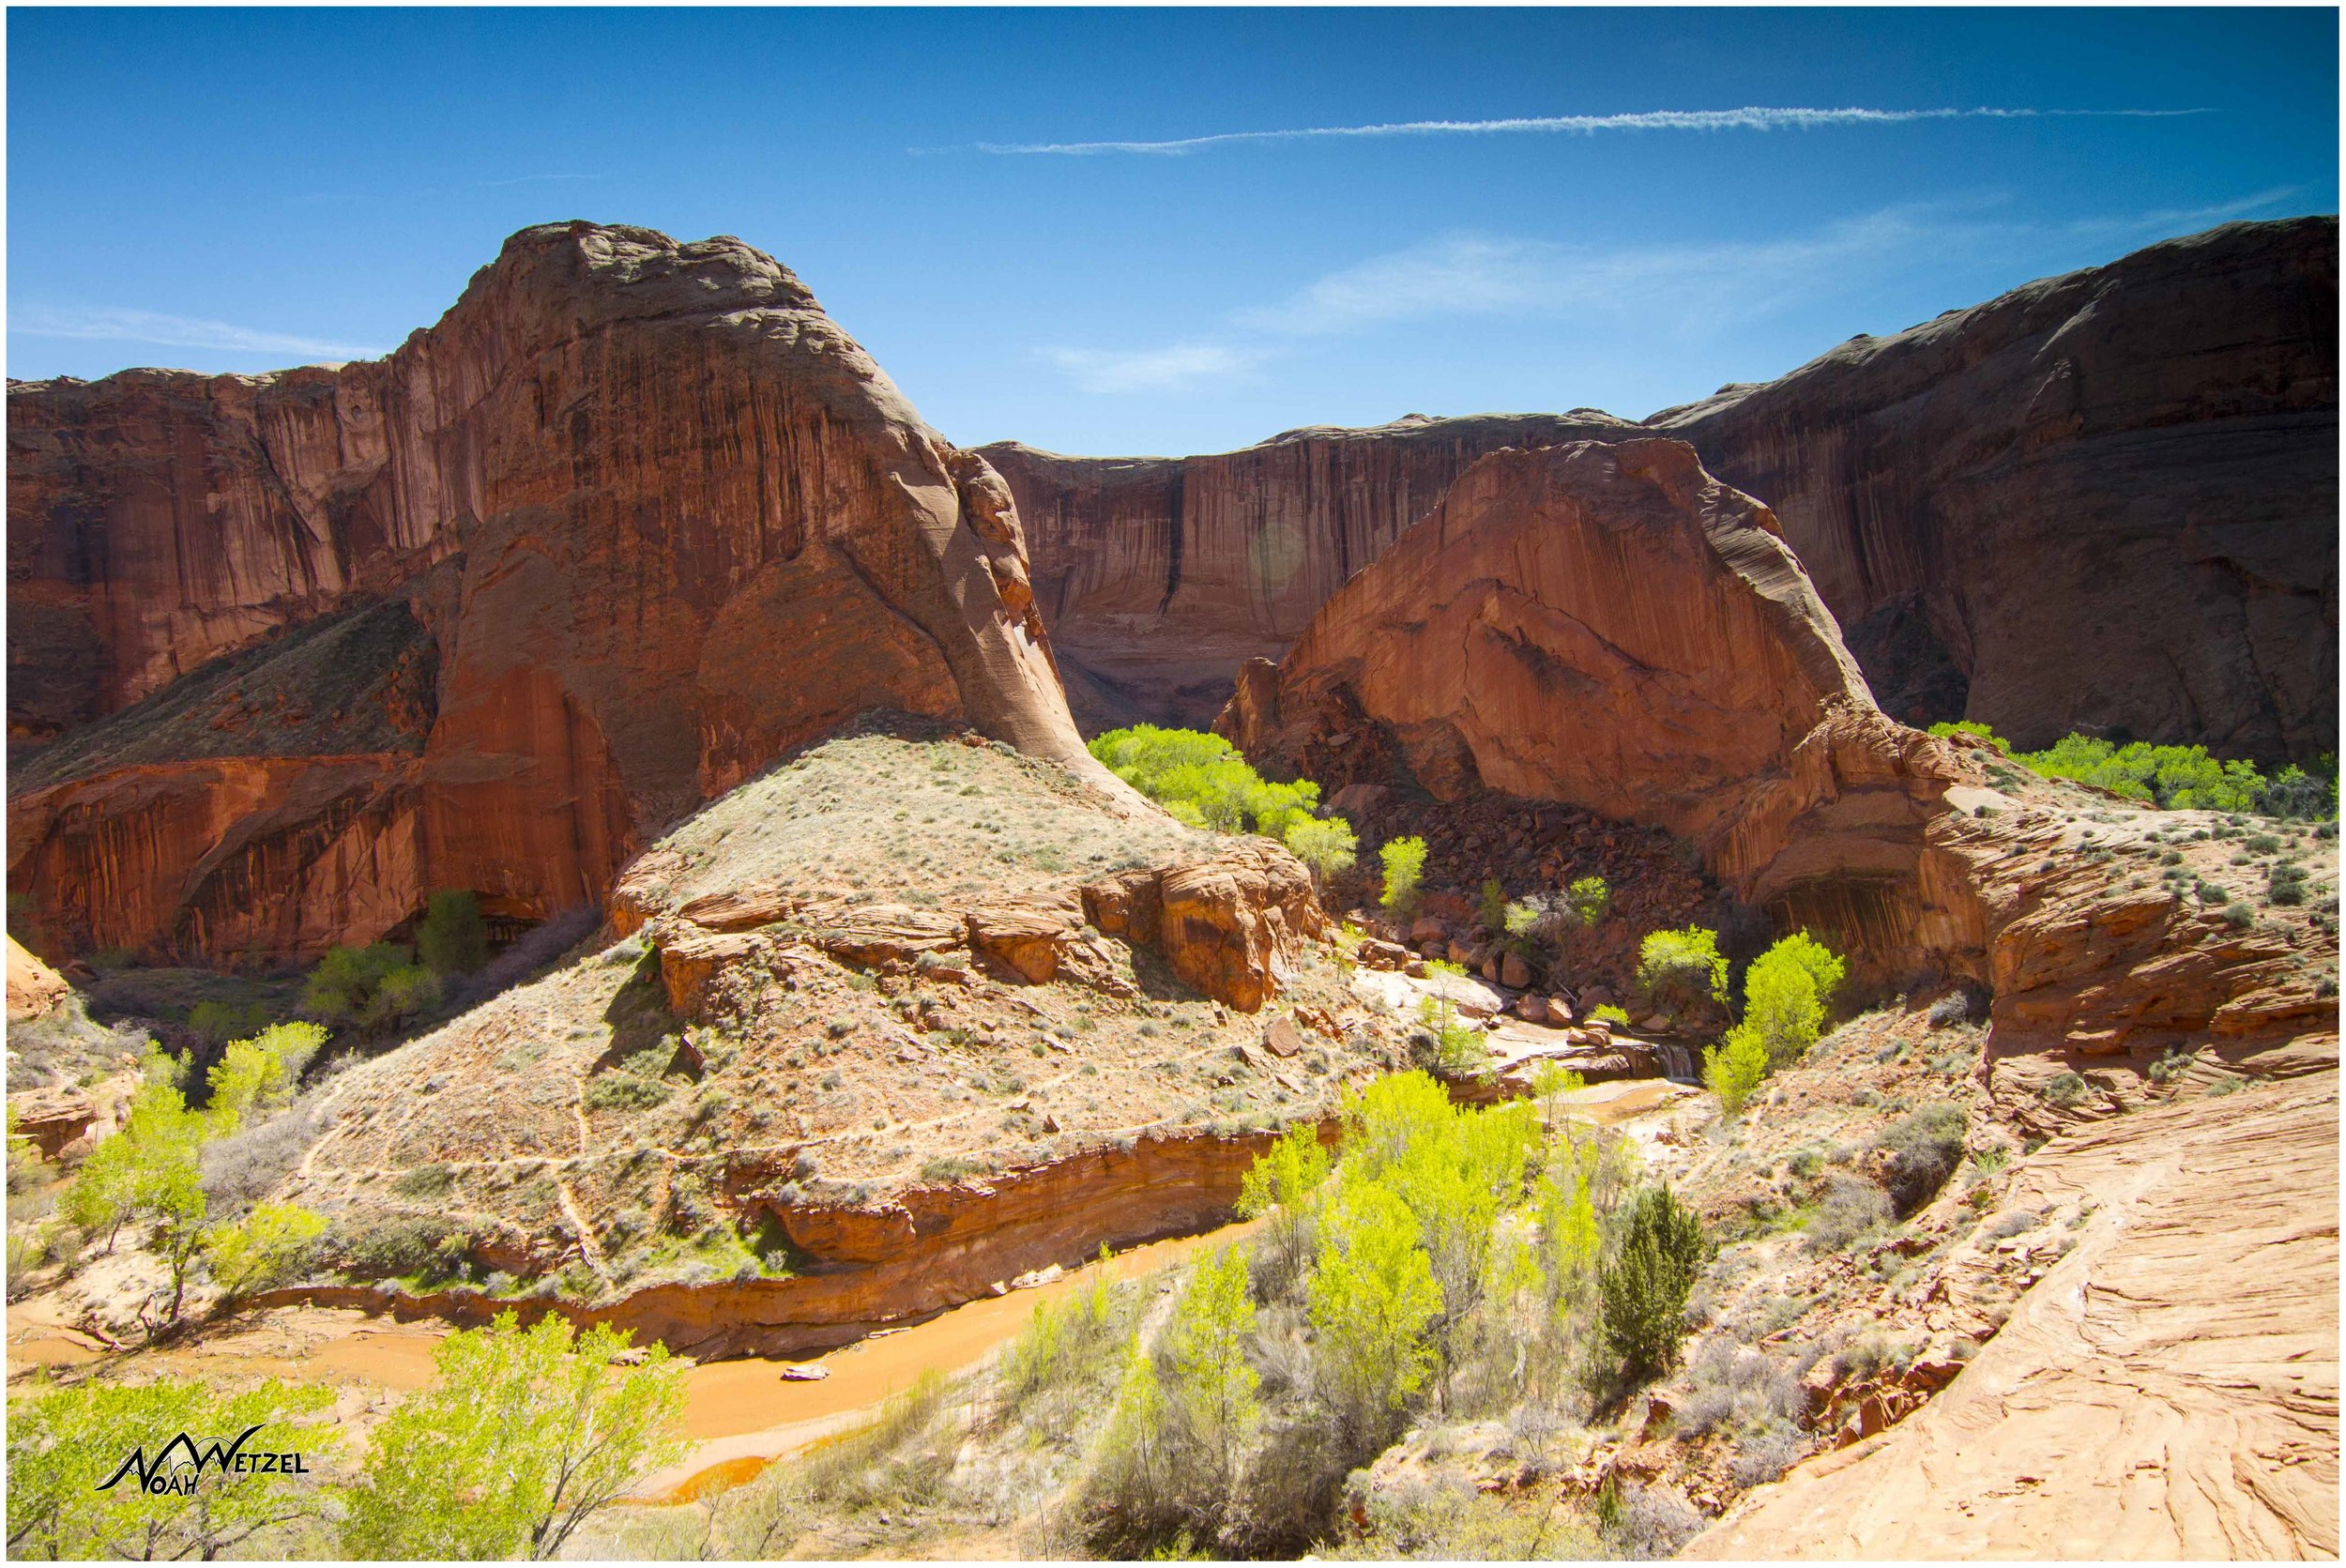 Overlooking the Waterfall Oasis. Coyote Gulch. Escalante, Utah